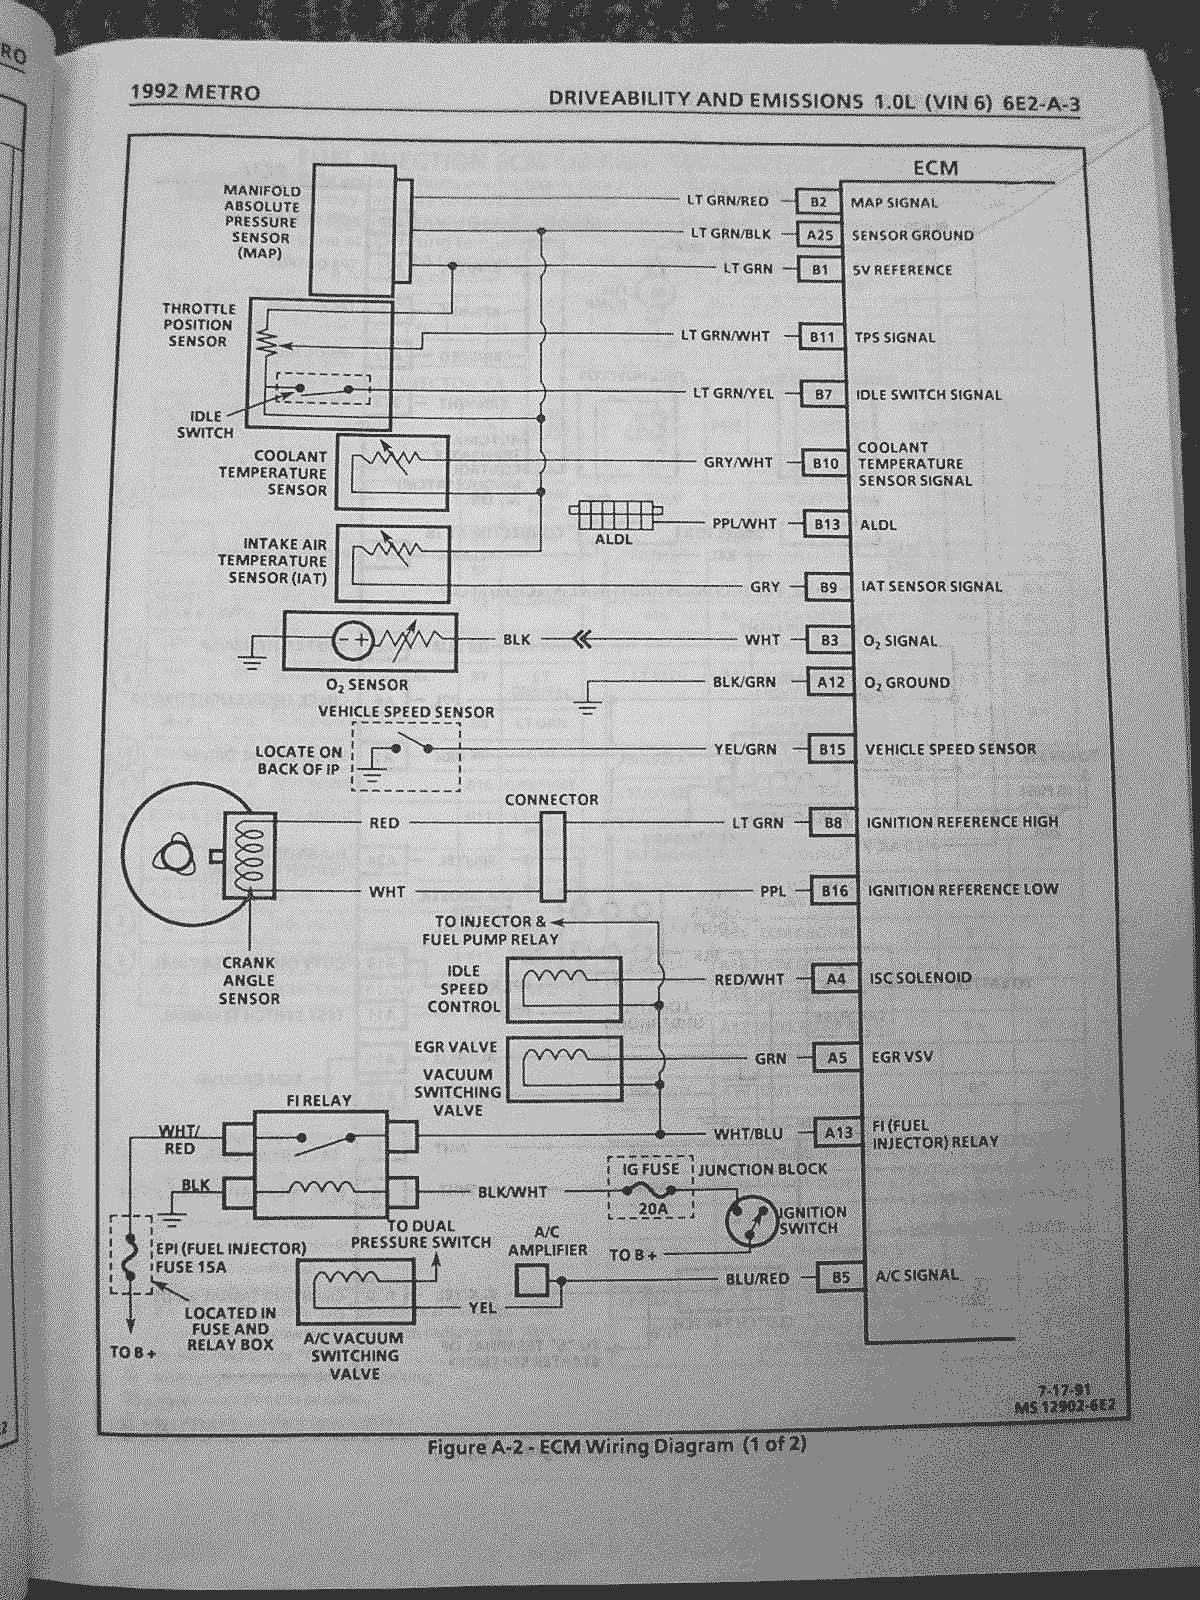 Suzuki Samurai Fuse Box Diagram List Of Schematic Circuit 1986 Pontiac Trans Am 1989 Swift Just Wiring Data Rh Ag Skiphire Co Uk